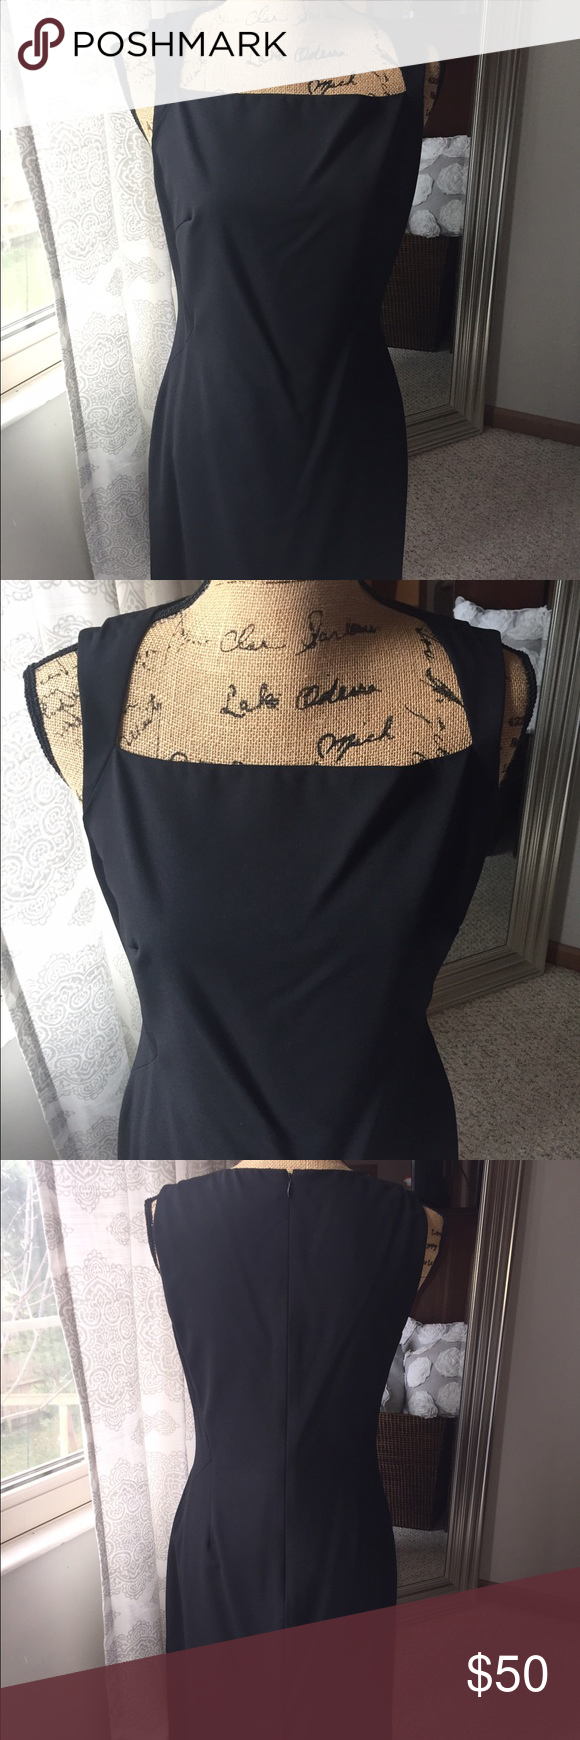 Black Ann Taylor Dress Perfect for office or out on town.  Beautiful neckline.  Has been kept in garment bag so in excellent y condition.  Worn at a wedding once. Ann Taylor Dresses